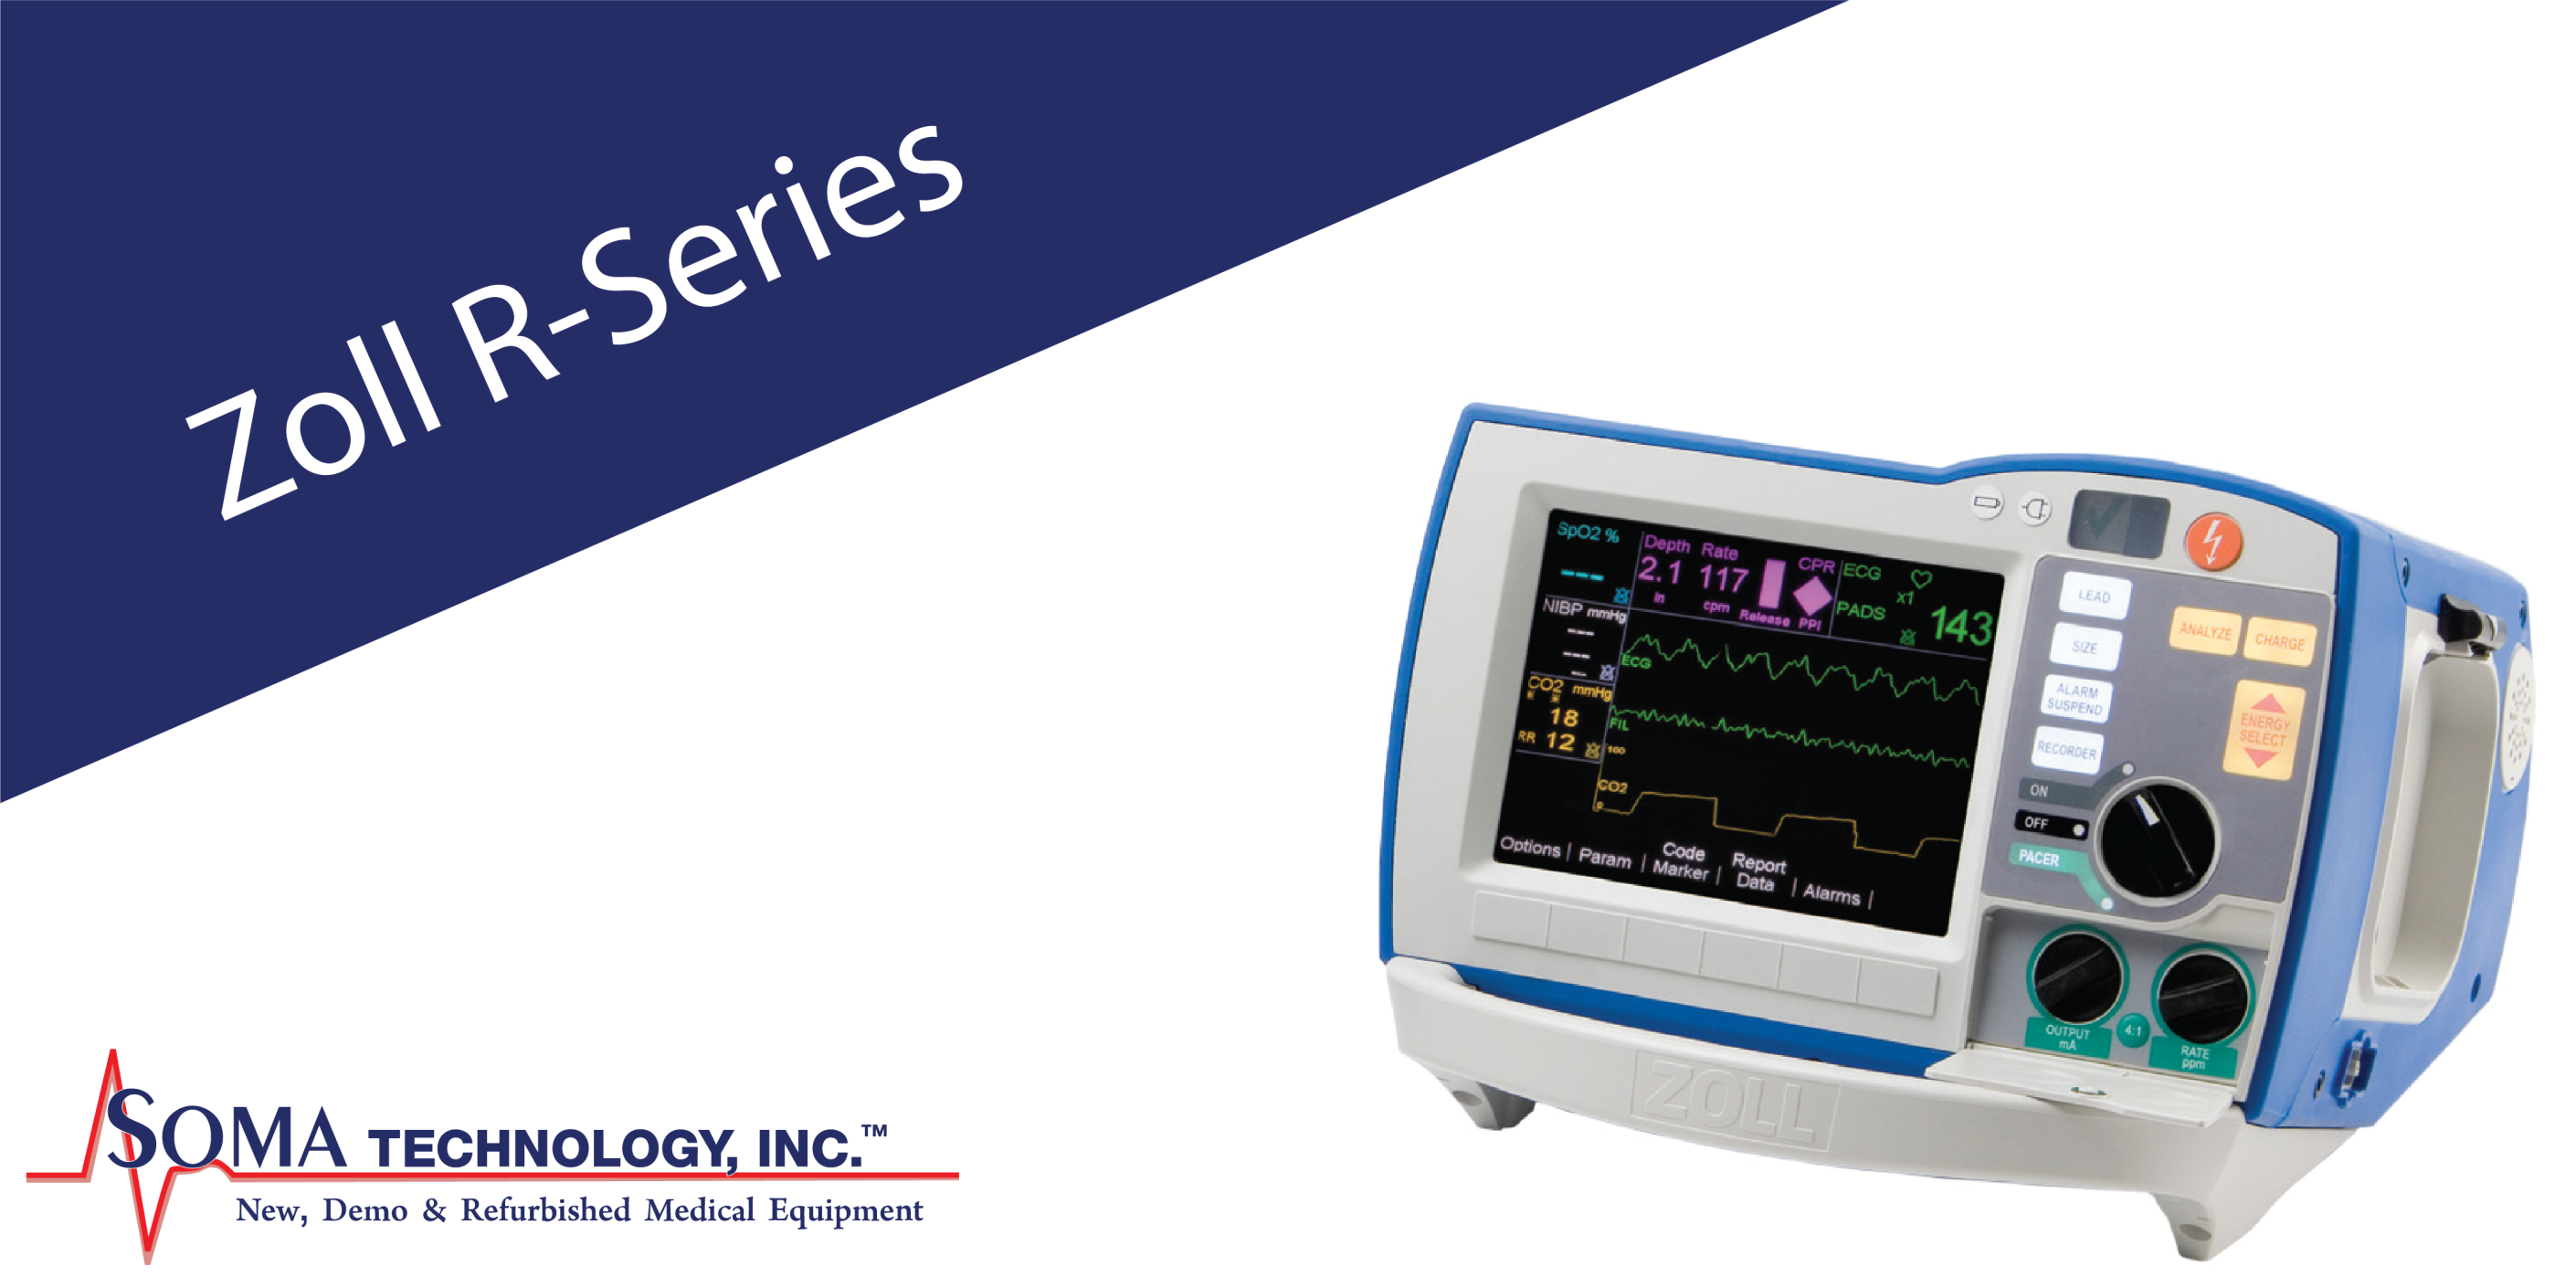 Zoll R-Series Defibrillator - Available with Pacing, End-Tidal CO2